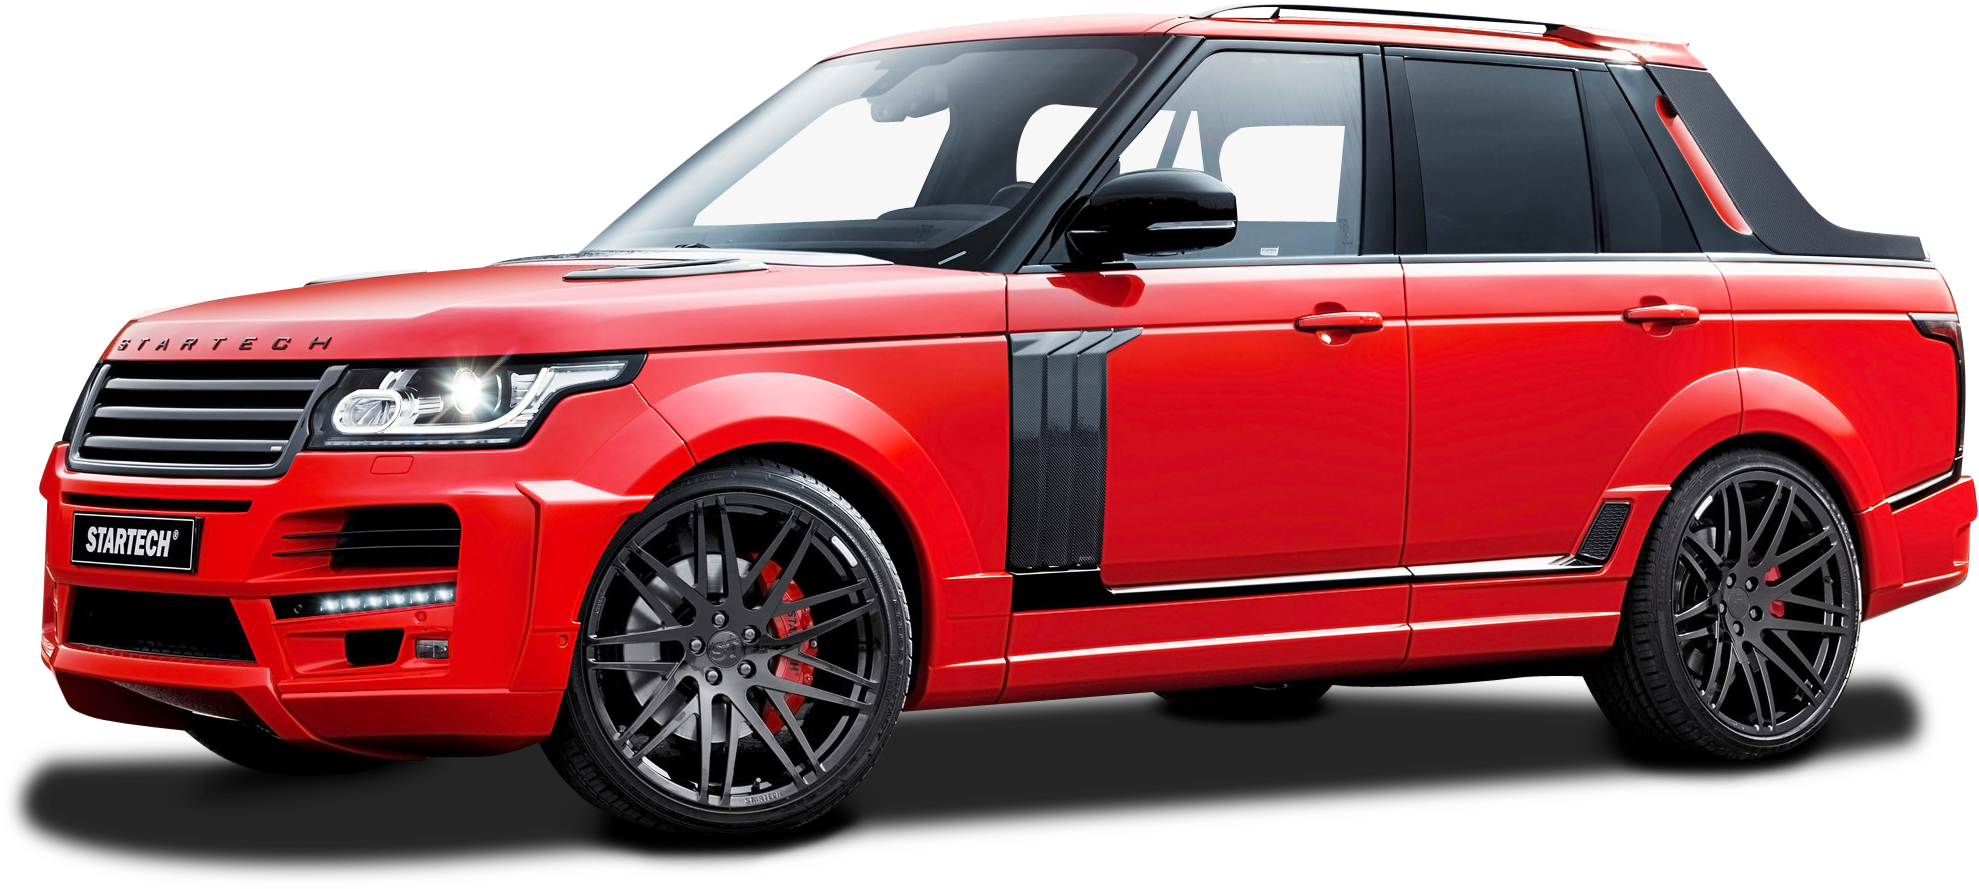 Download 2094 X 1026 Toyota Scion Xb 2017 Full Size Png Image